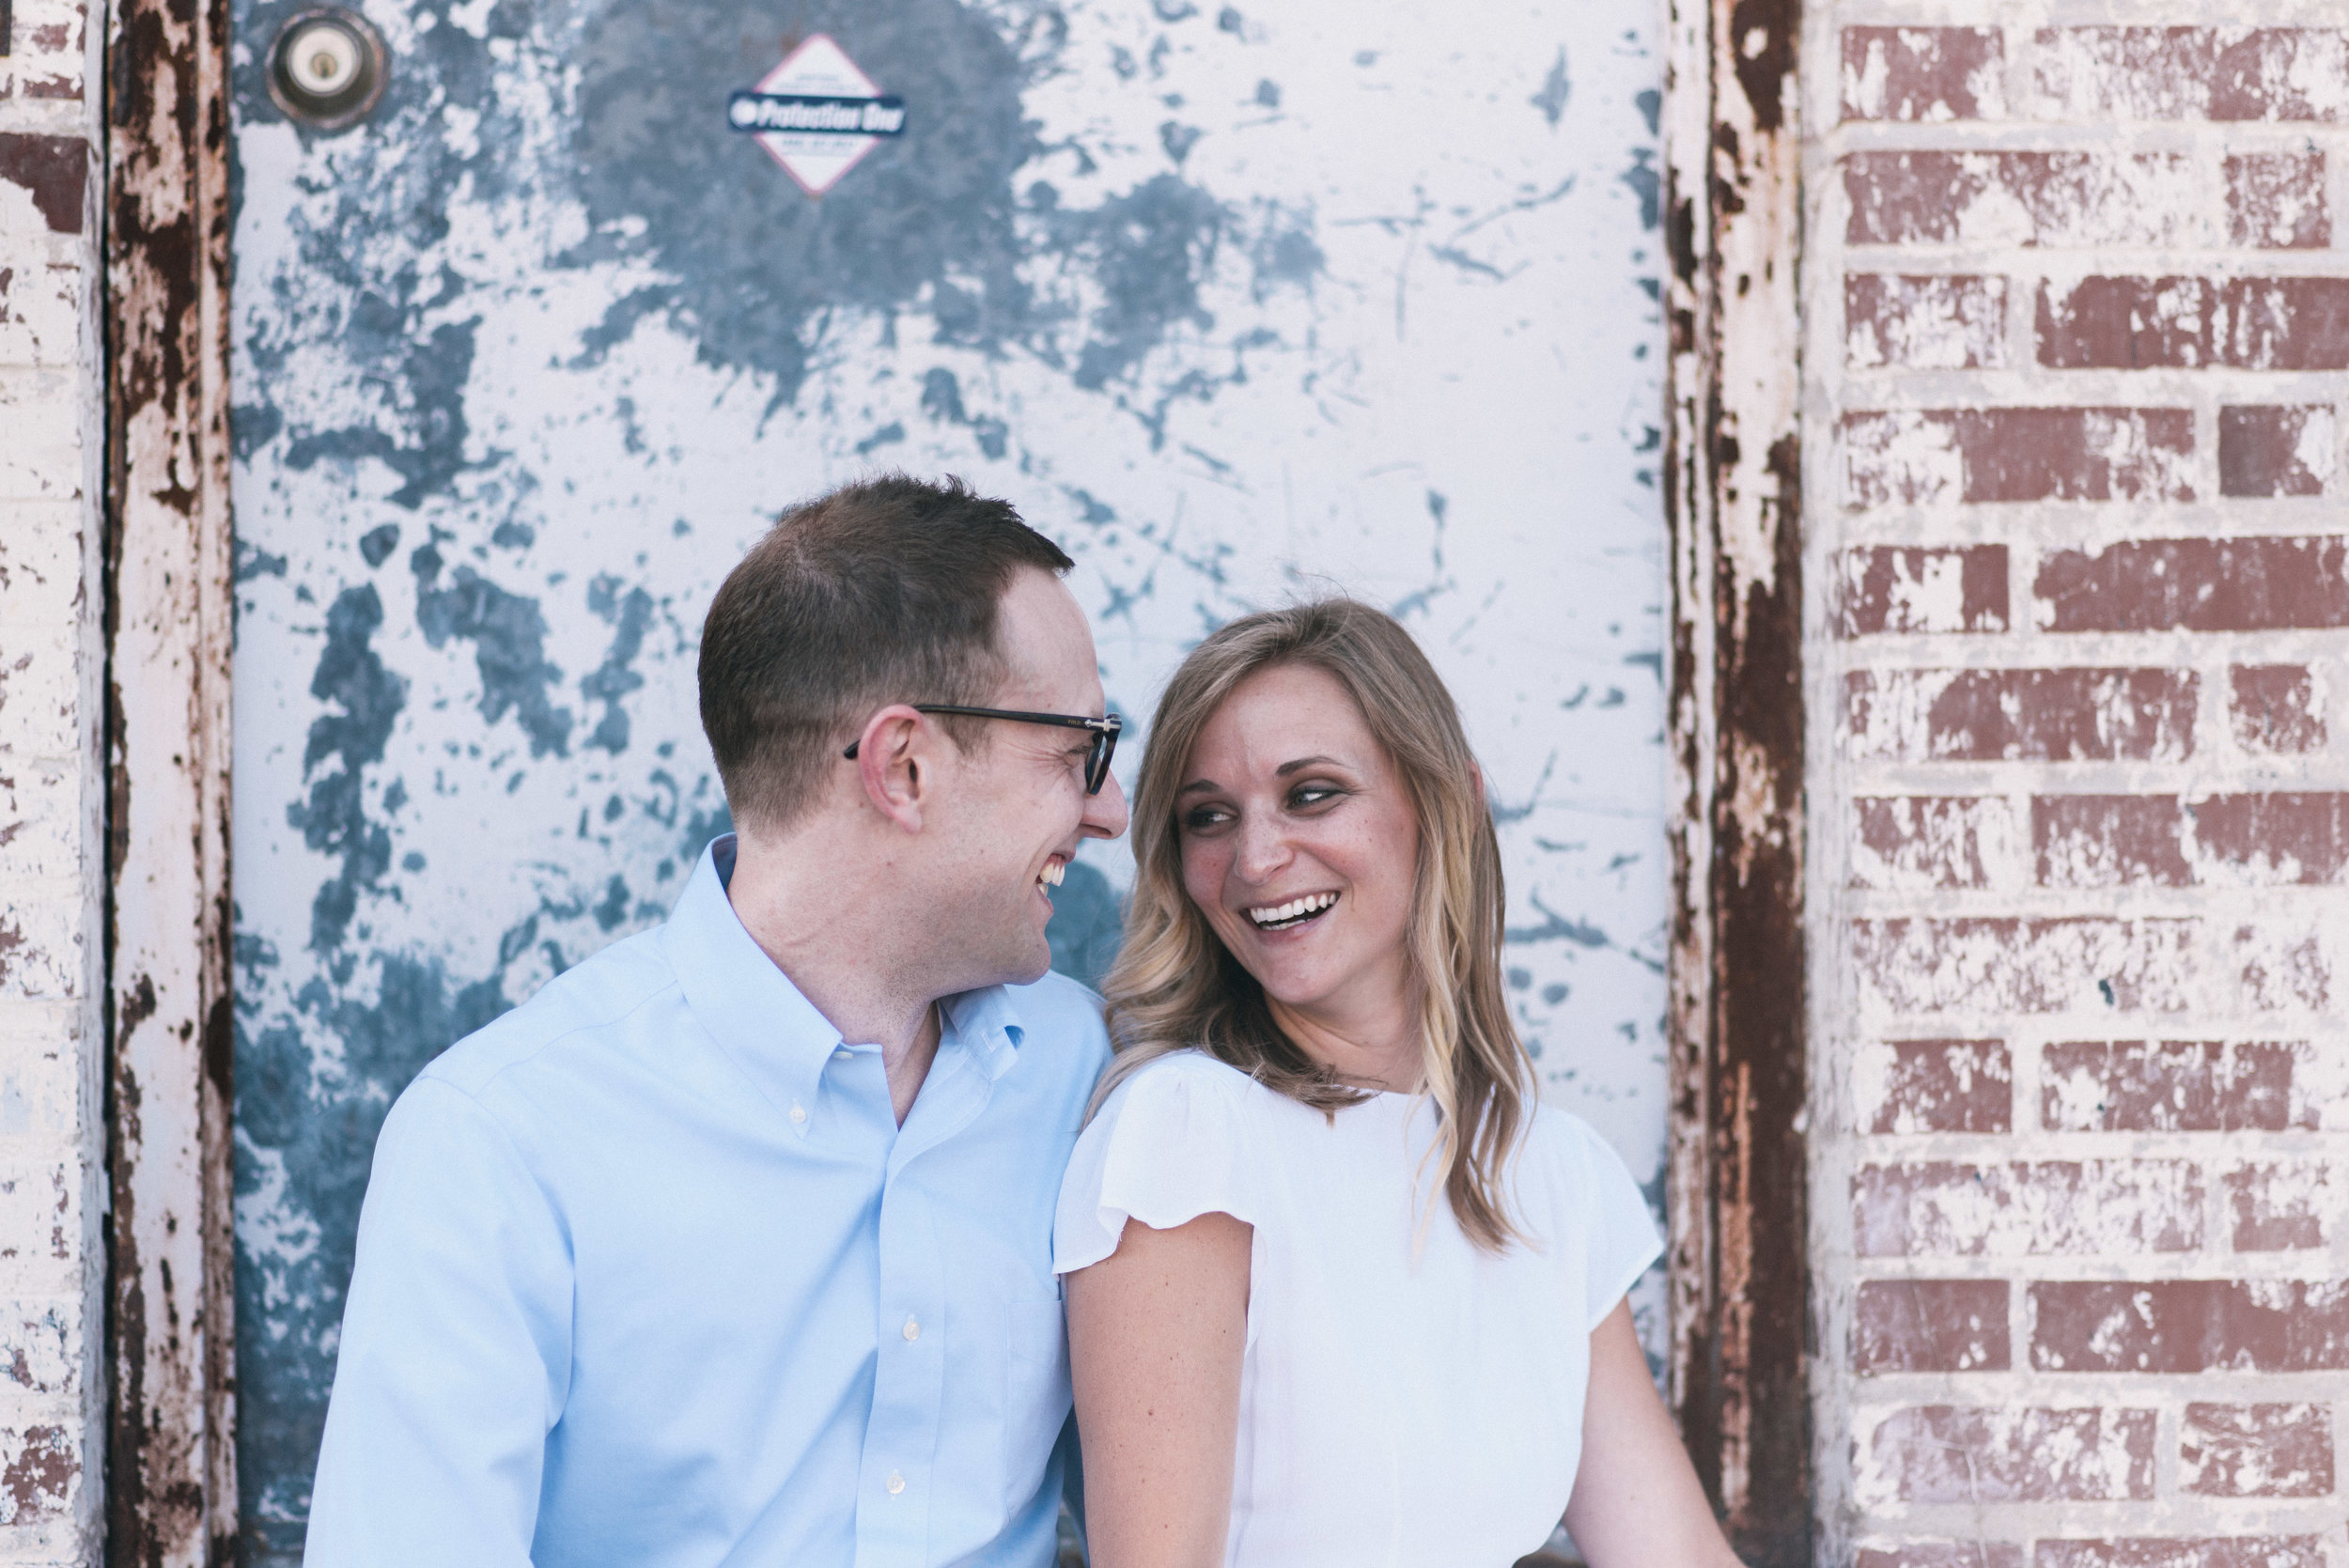 taryn-and-jackson-engagement-save-the-date (10 of 219).jpg